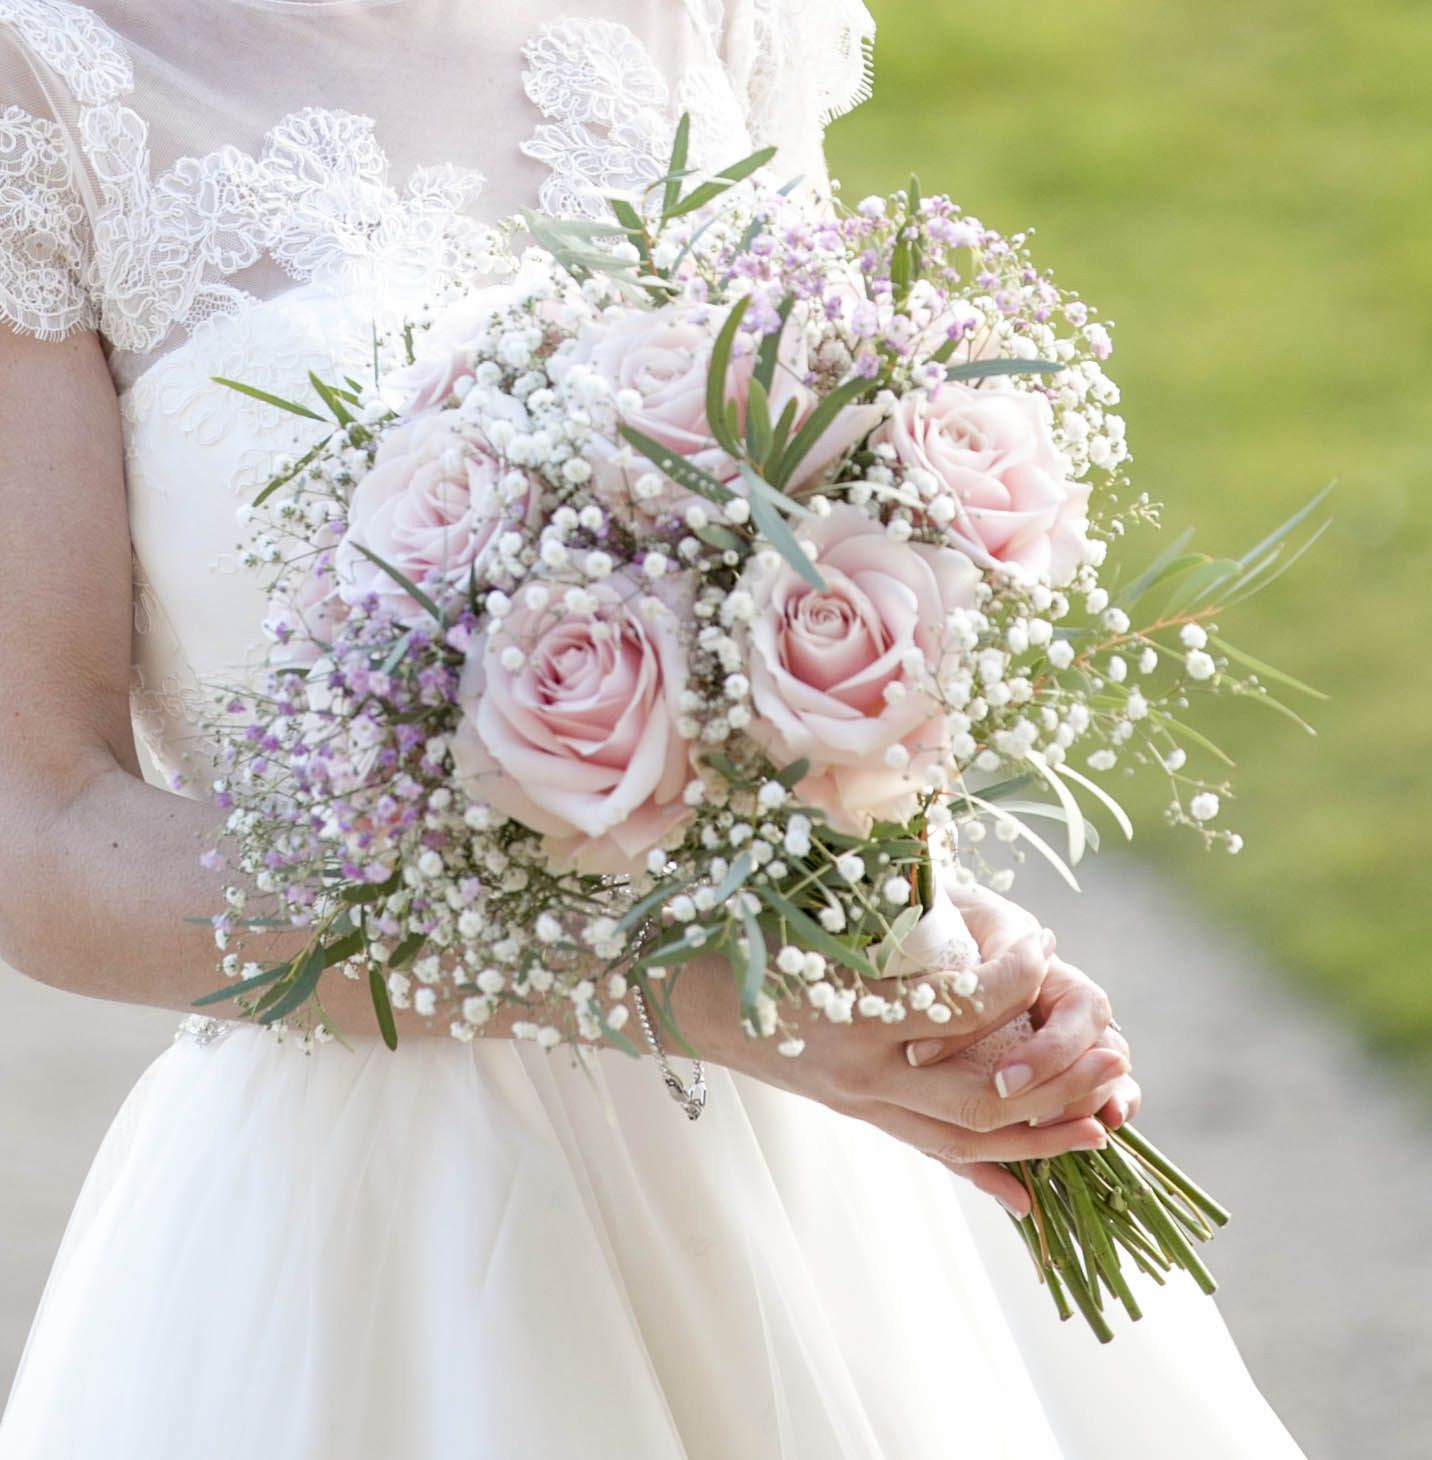 Wedding Bouquet. Rose And Gypsophila Bouquet. Pink Roses